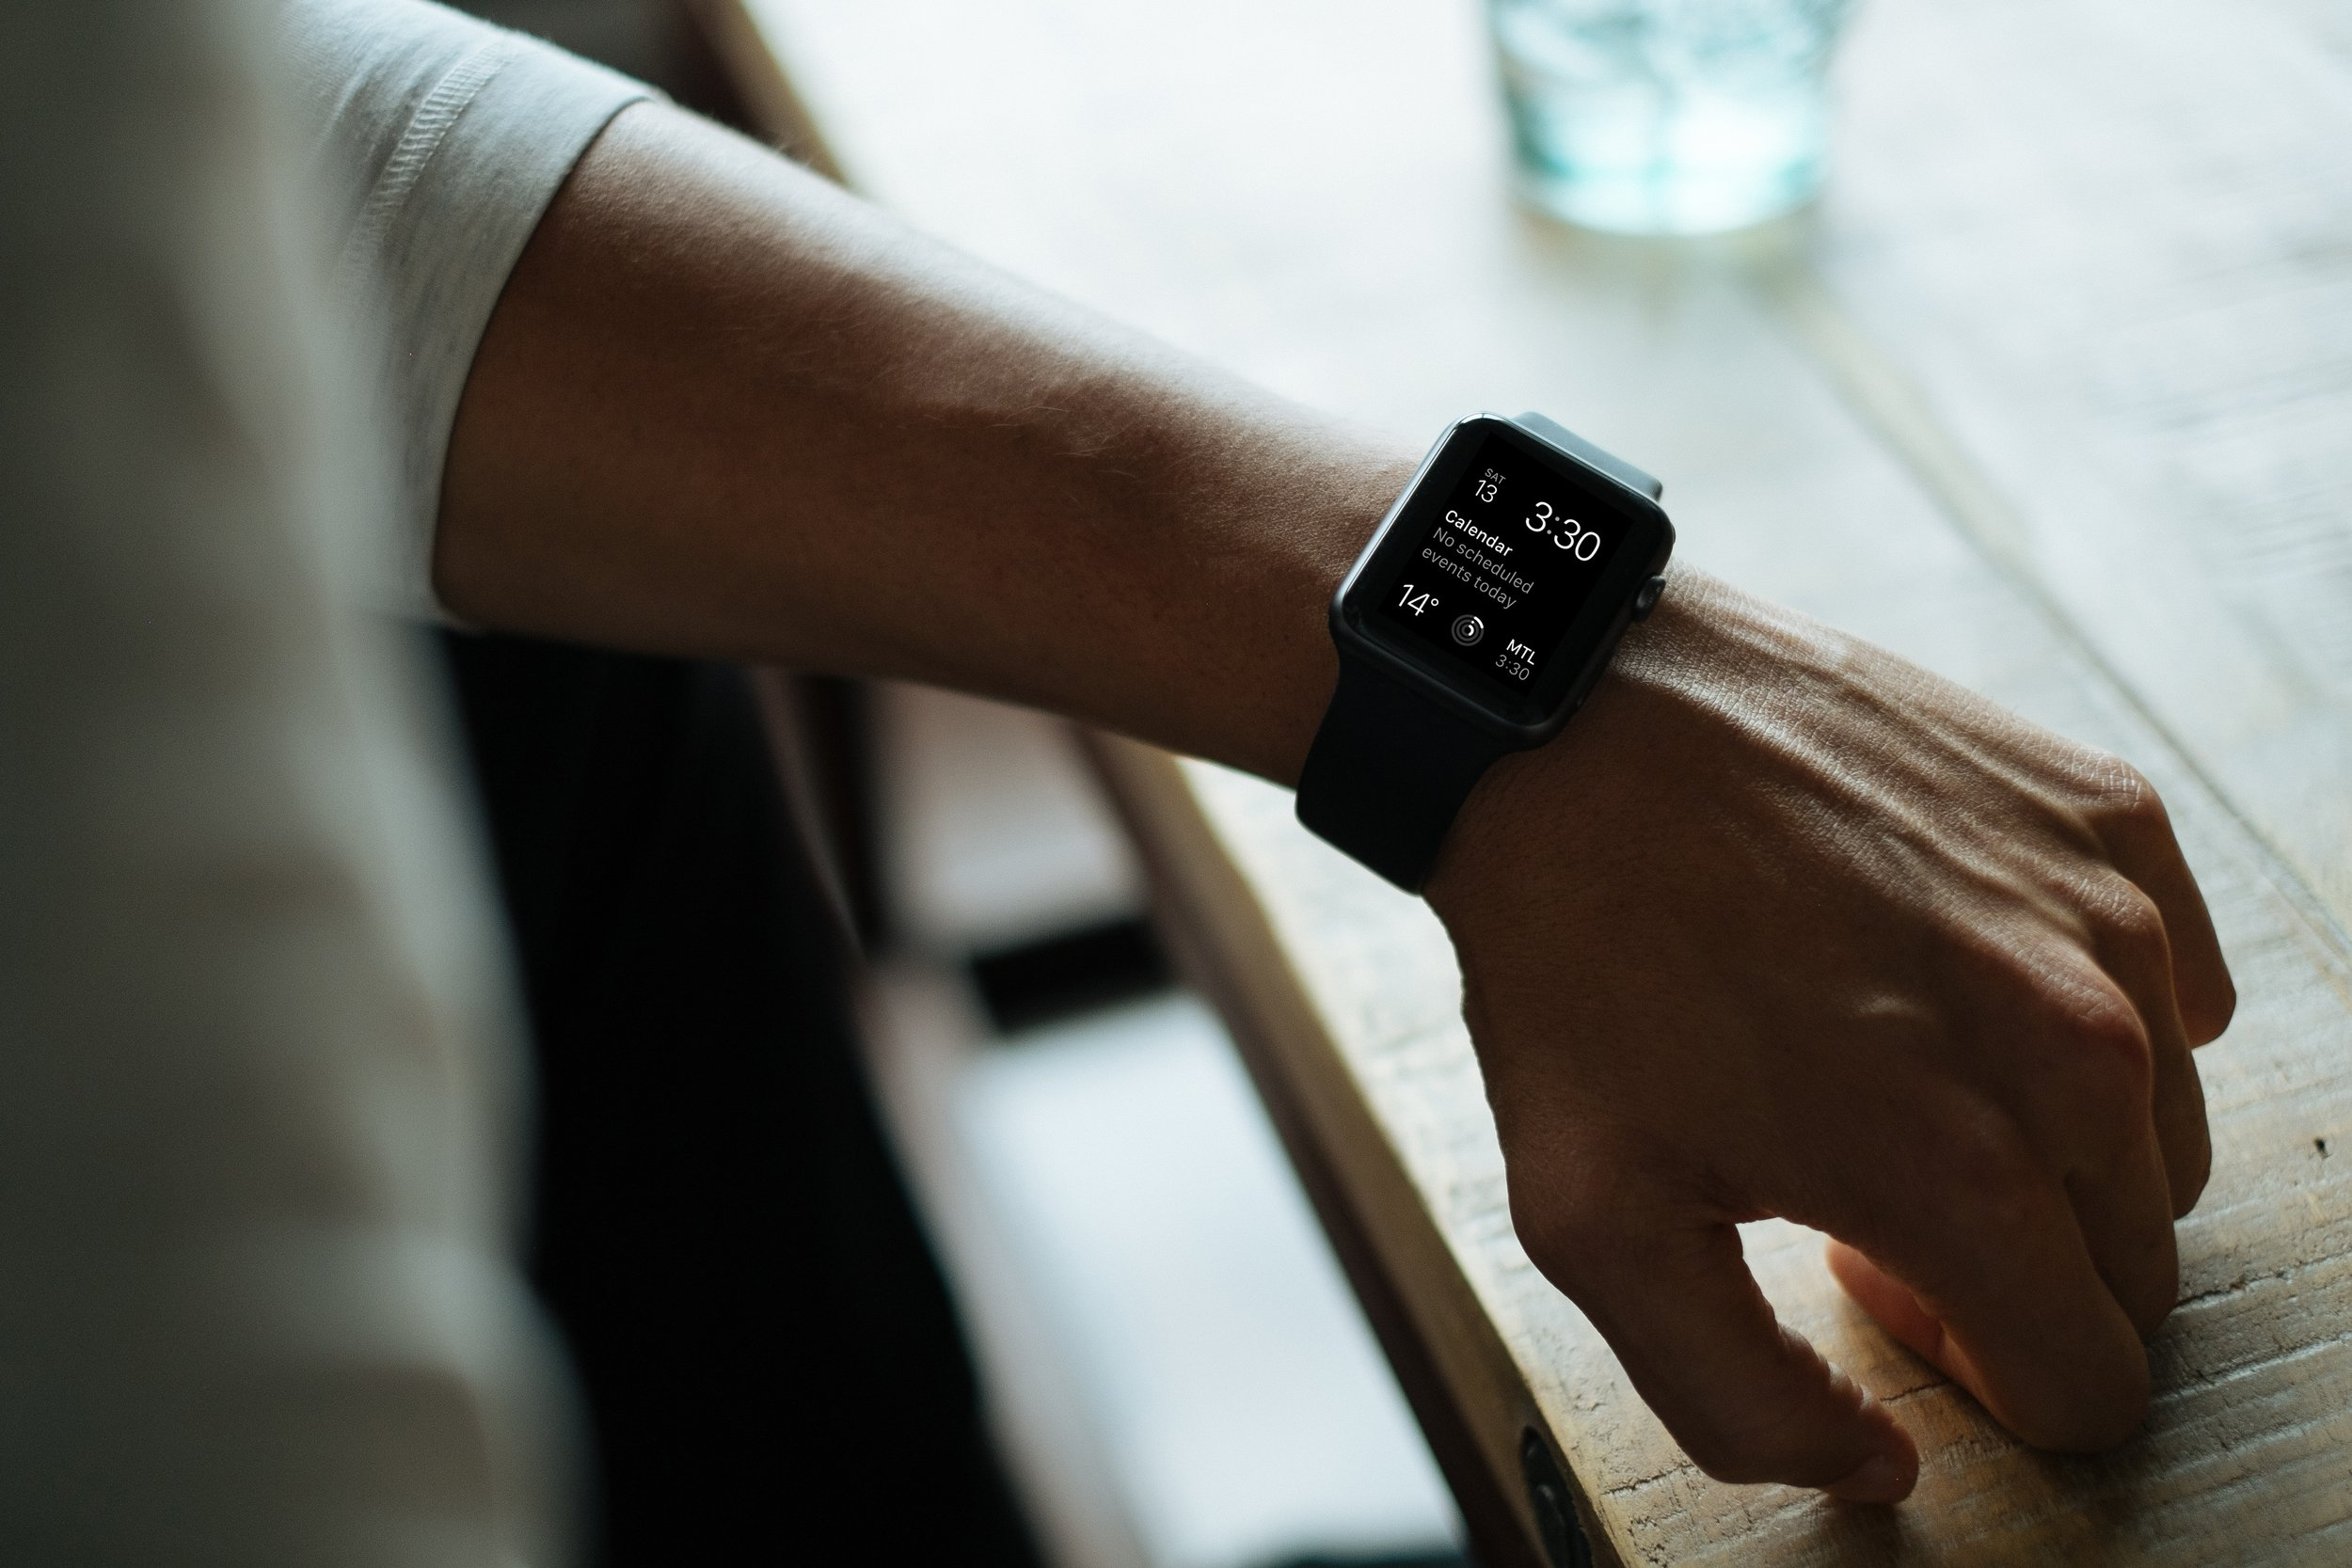 Security Considerations for Wearable Technology